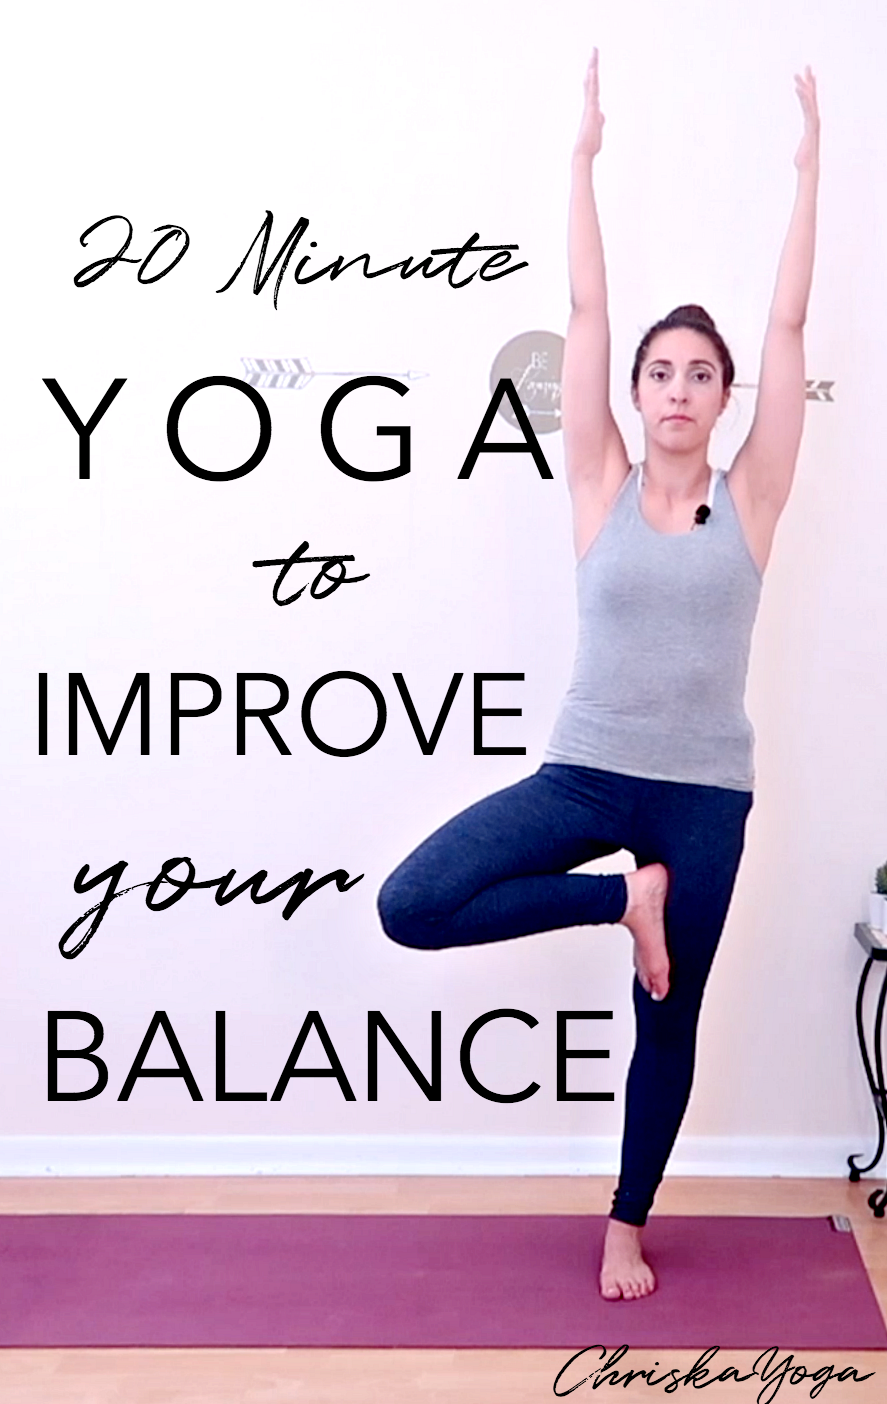 20 Minute Yoga to Improve Balance - Hatha Yoga for Beginners for Balance - Yoga At home